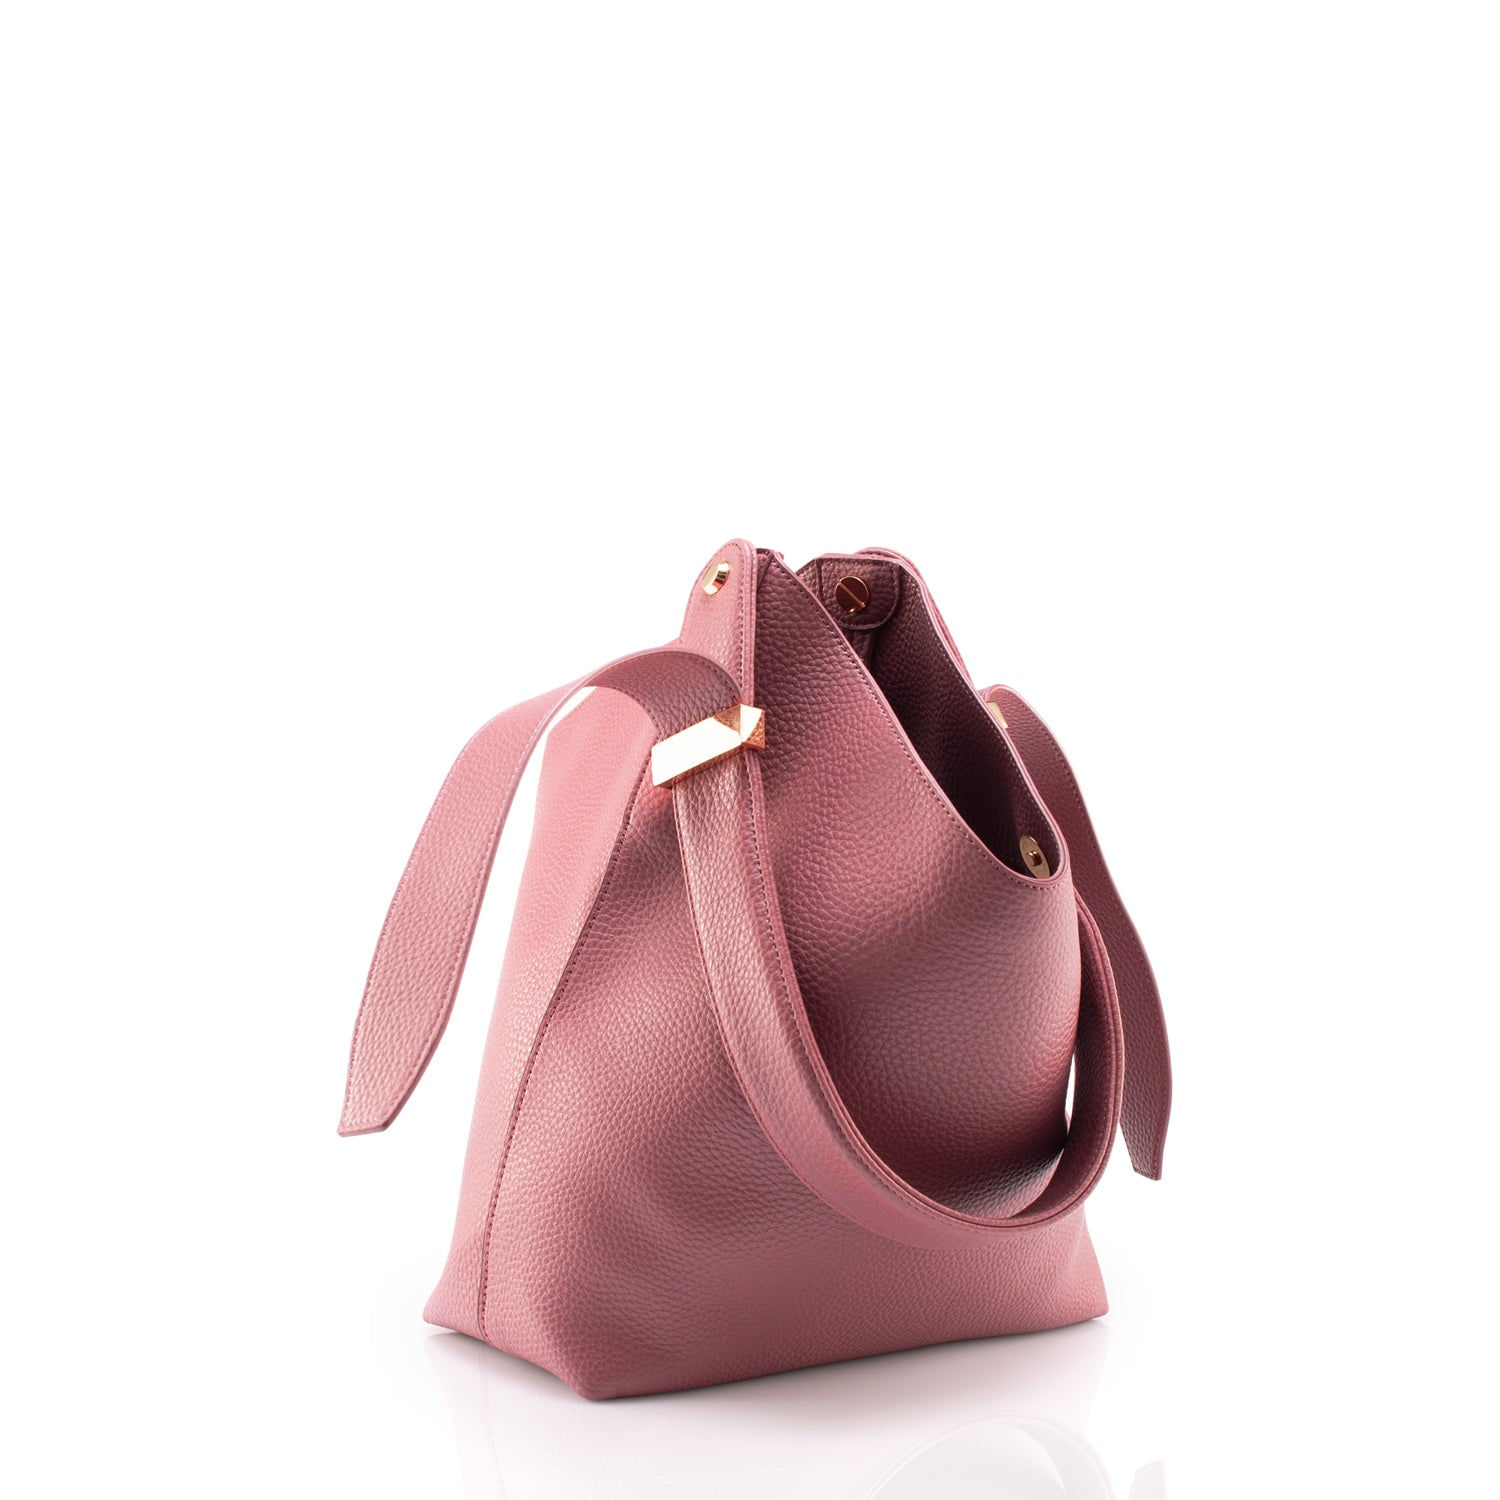 RIBAG HOBO MINI - BLUSH